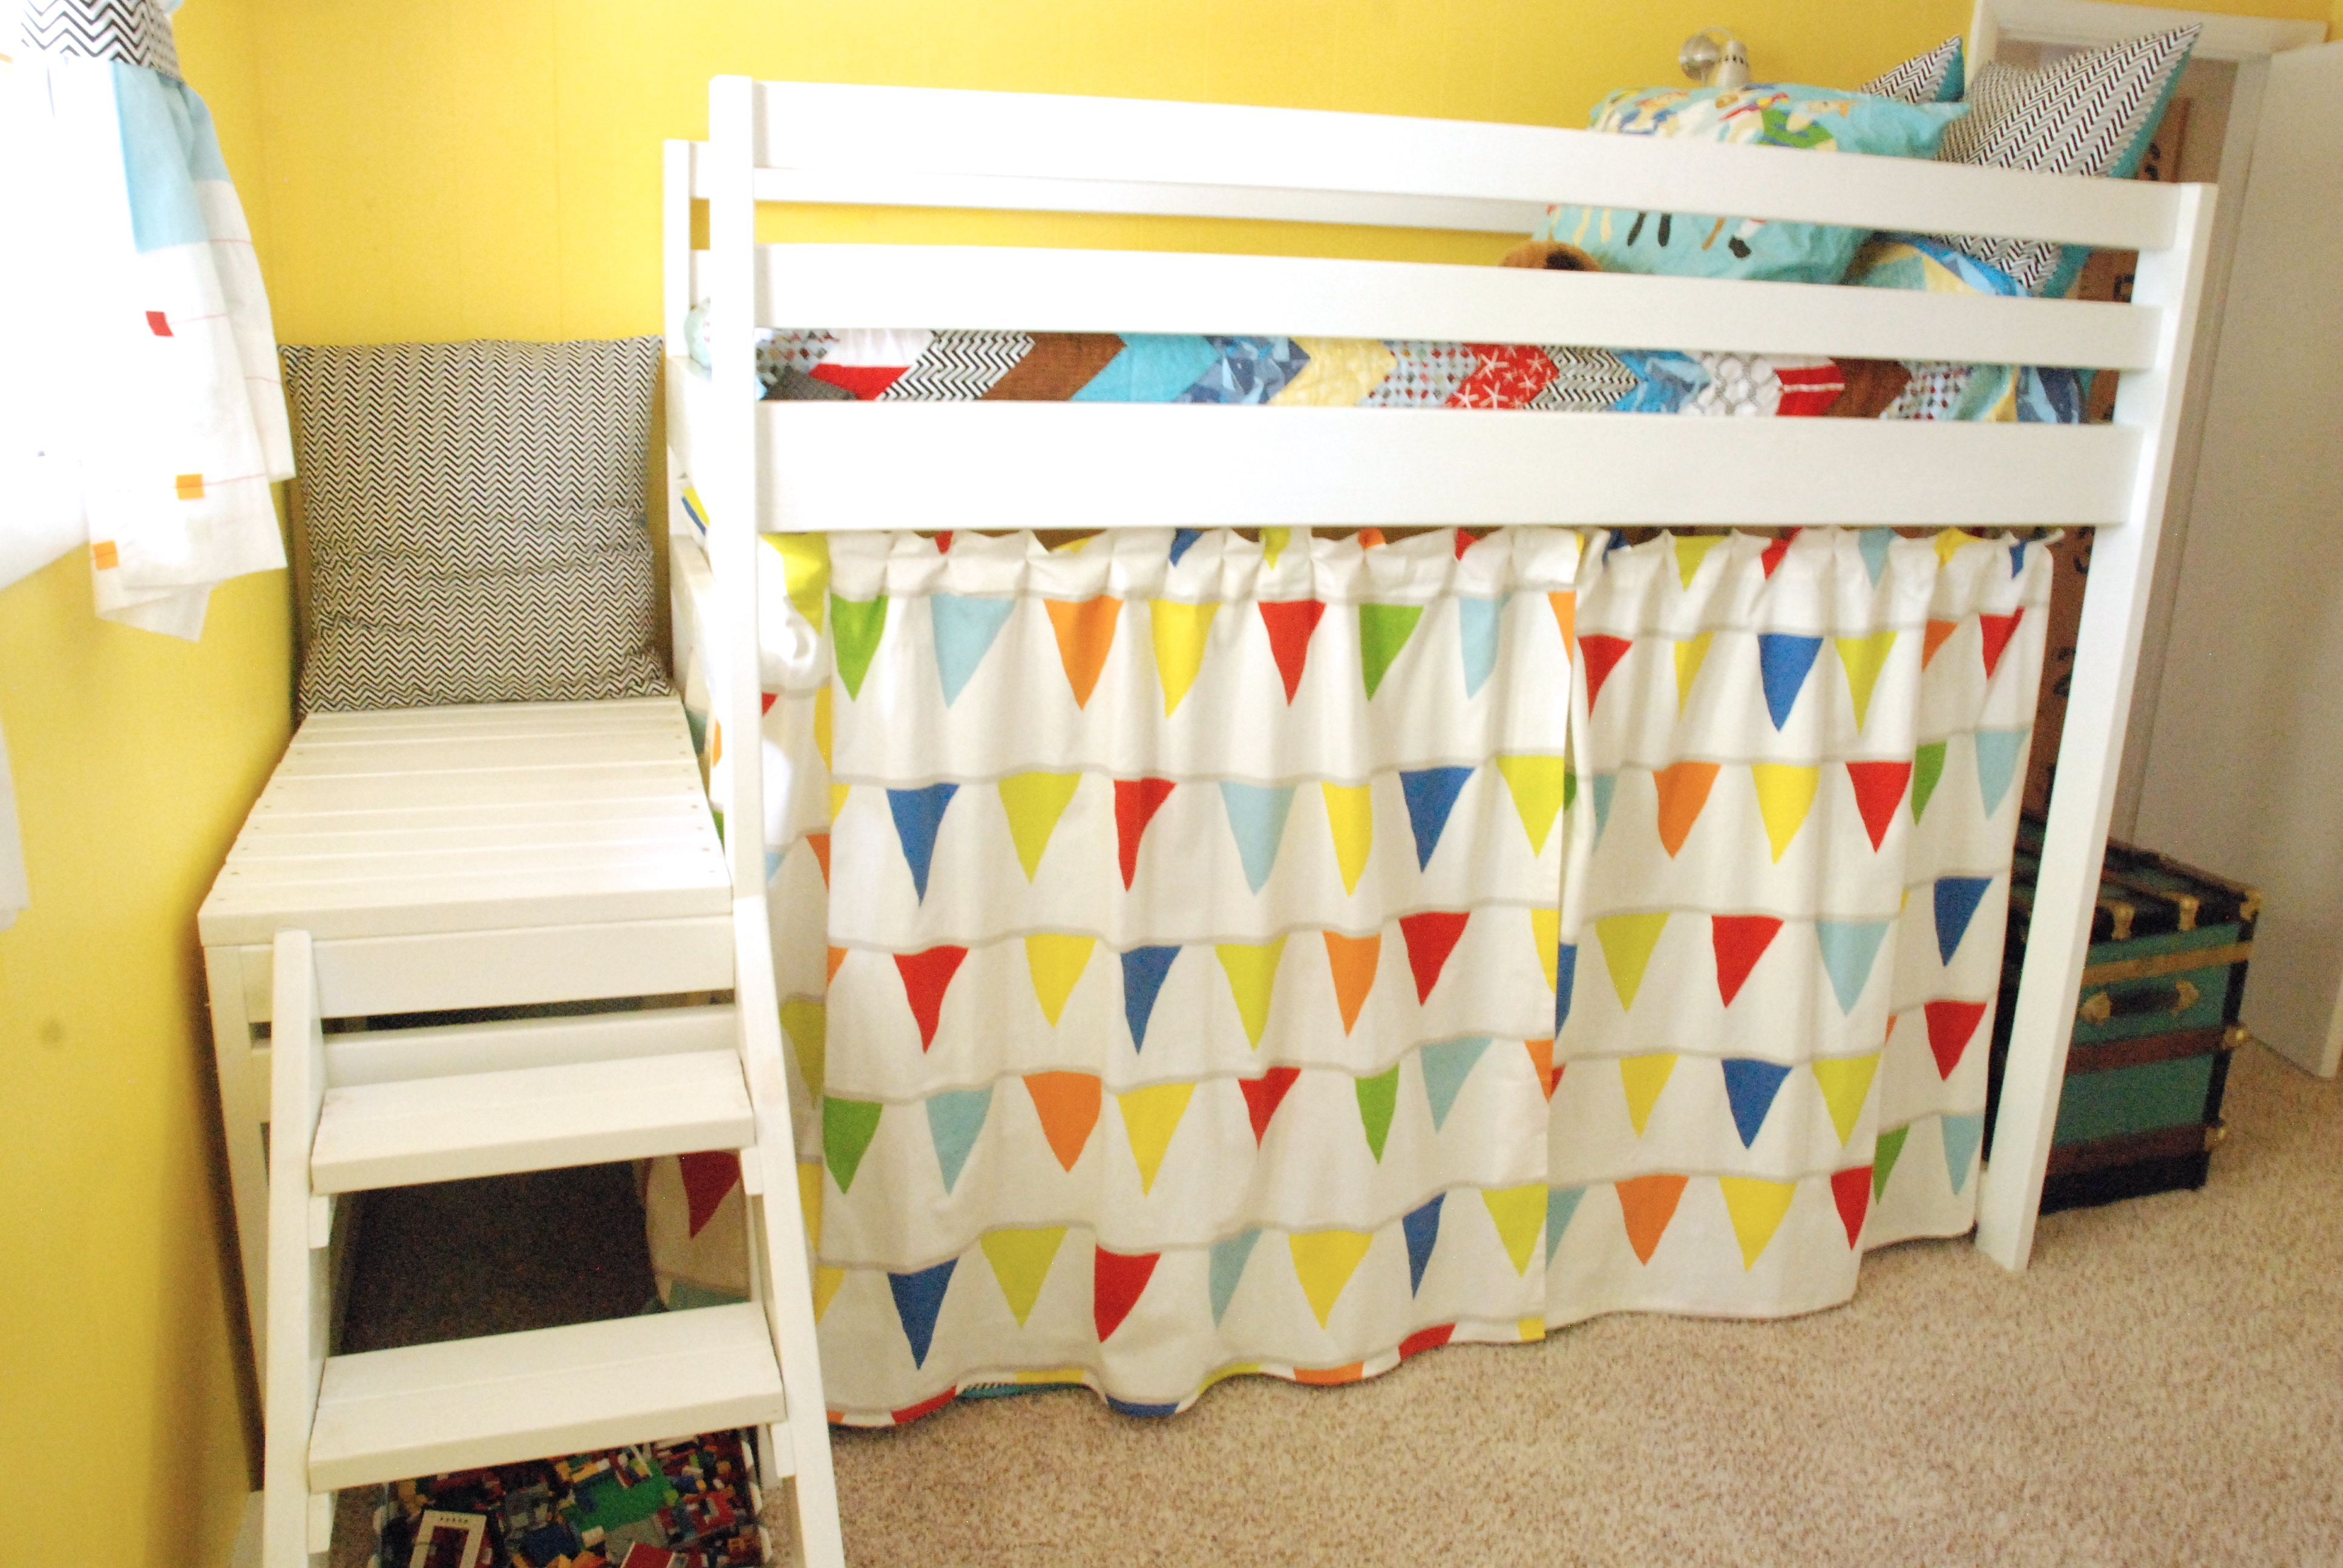 Uncategorized Do It Yourself For Kids diy jr camp loft bed with curtain do it yourself home projects projects